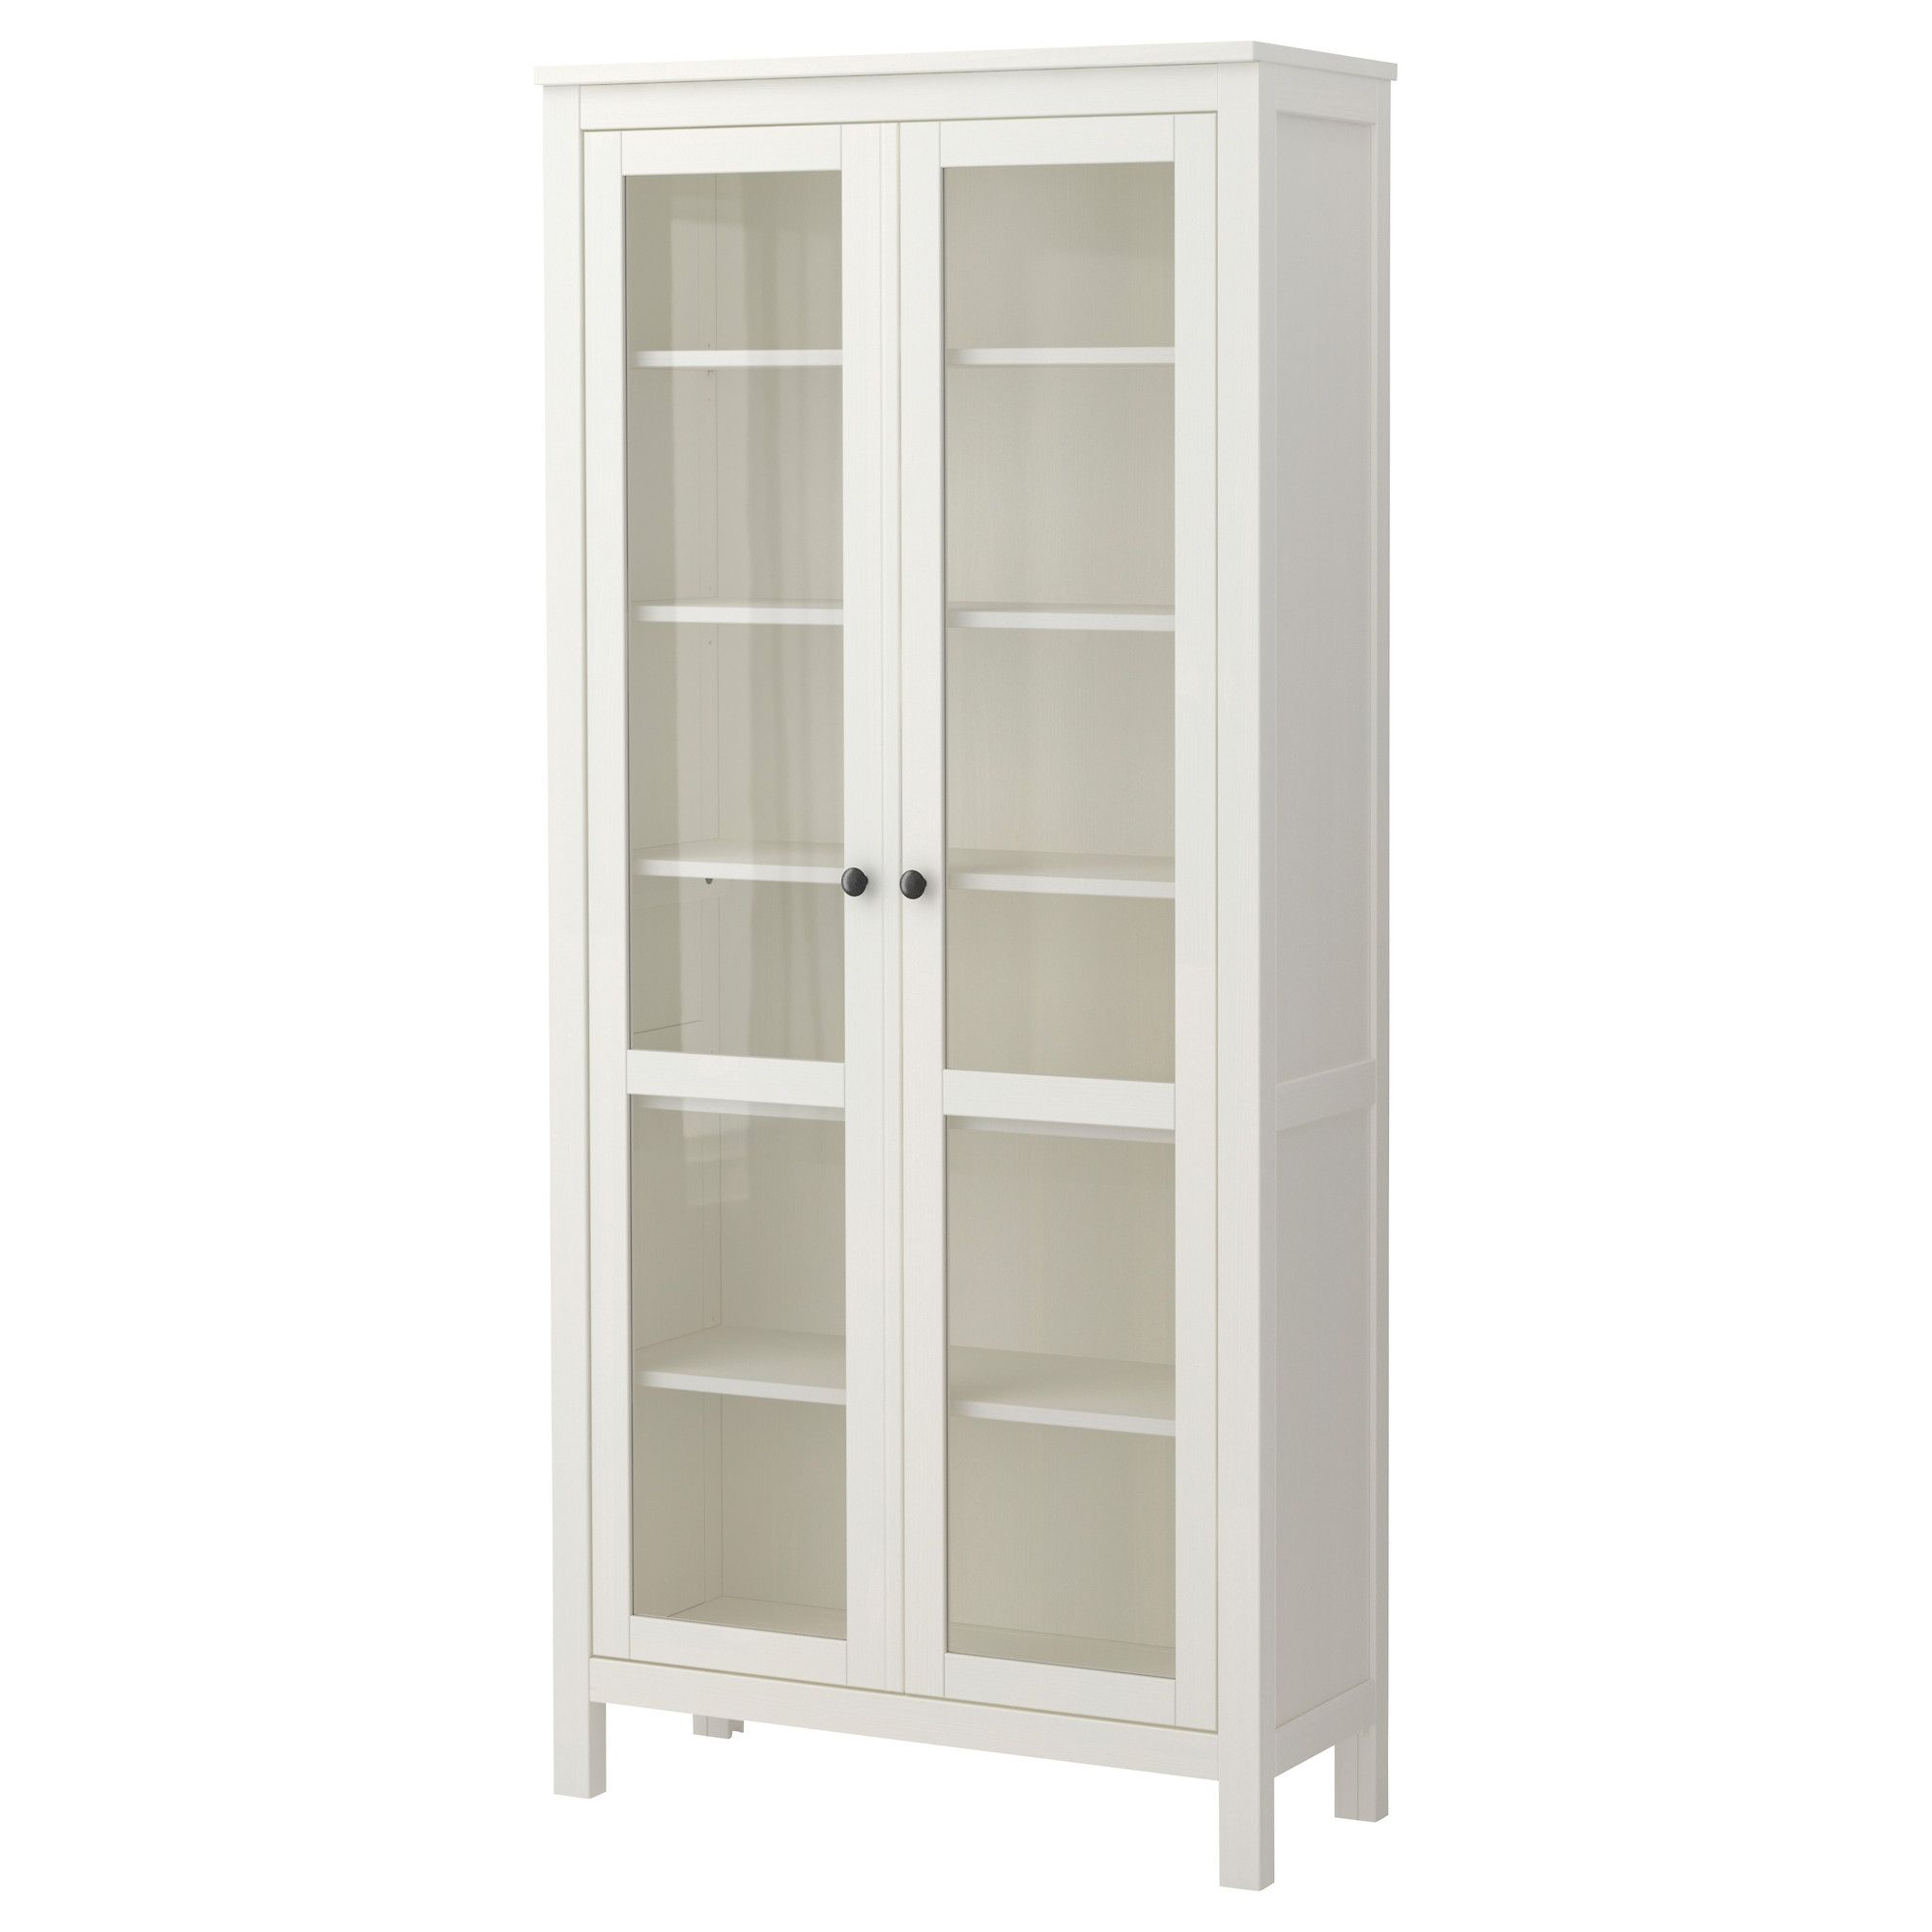 Hemnes glass door cabinet white 28 images hemnes glass for Armoire exterieur ikea